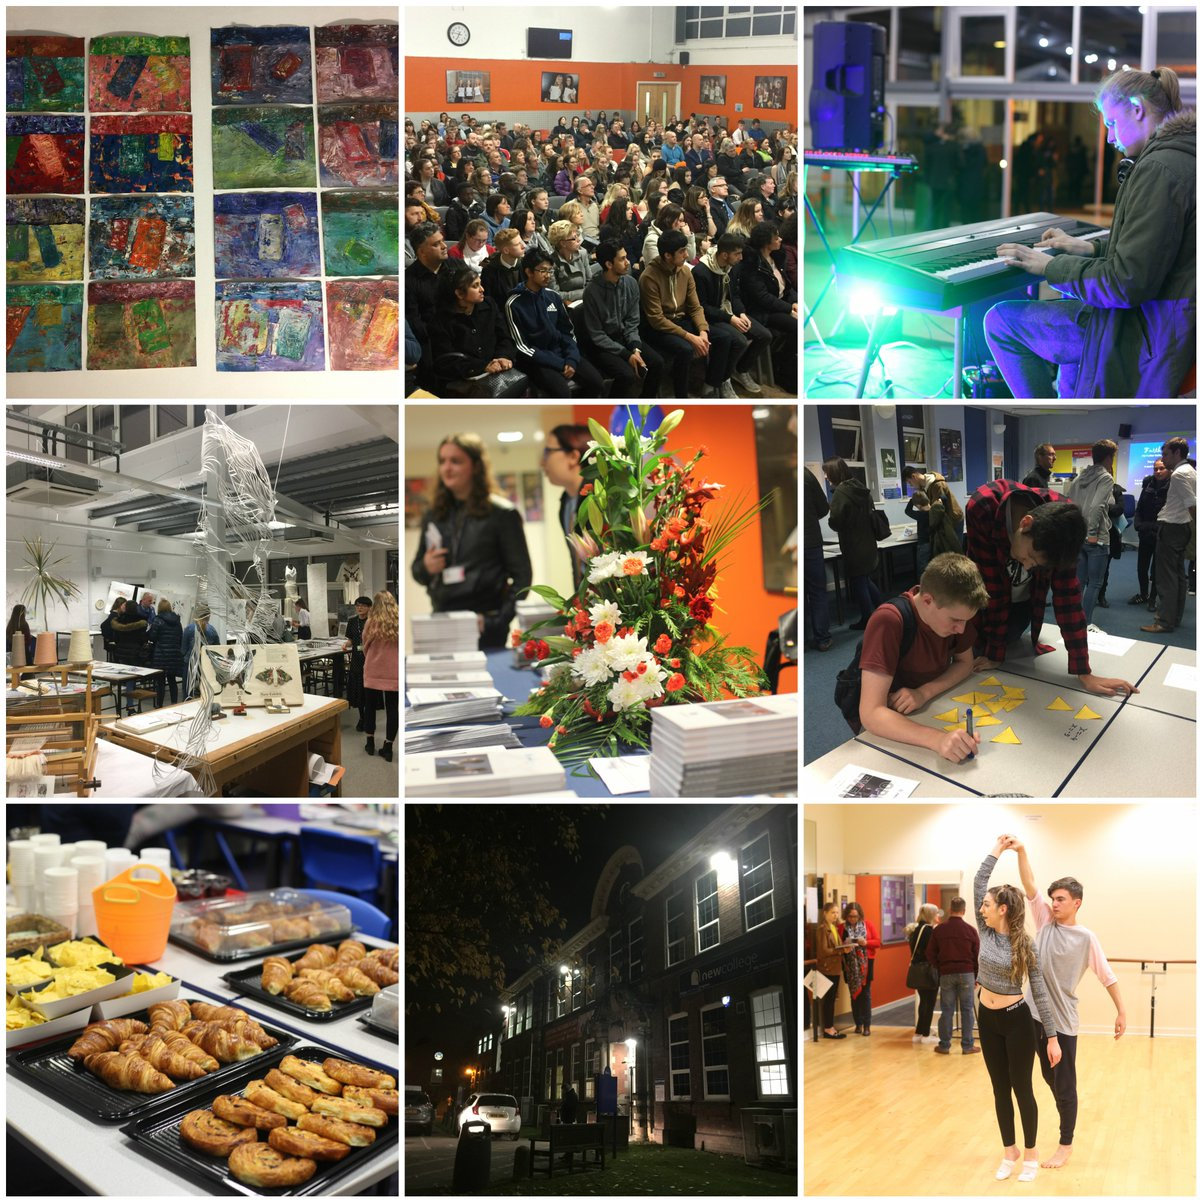 Thanks to everyone who attended our open evening, what a phenomenal turnout! We hope you all enjoyed meeting our students and staff and exploring your potential subject choices for post-16. #yourfuture #yourchoice #newcollege